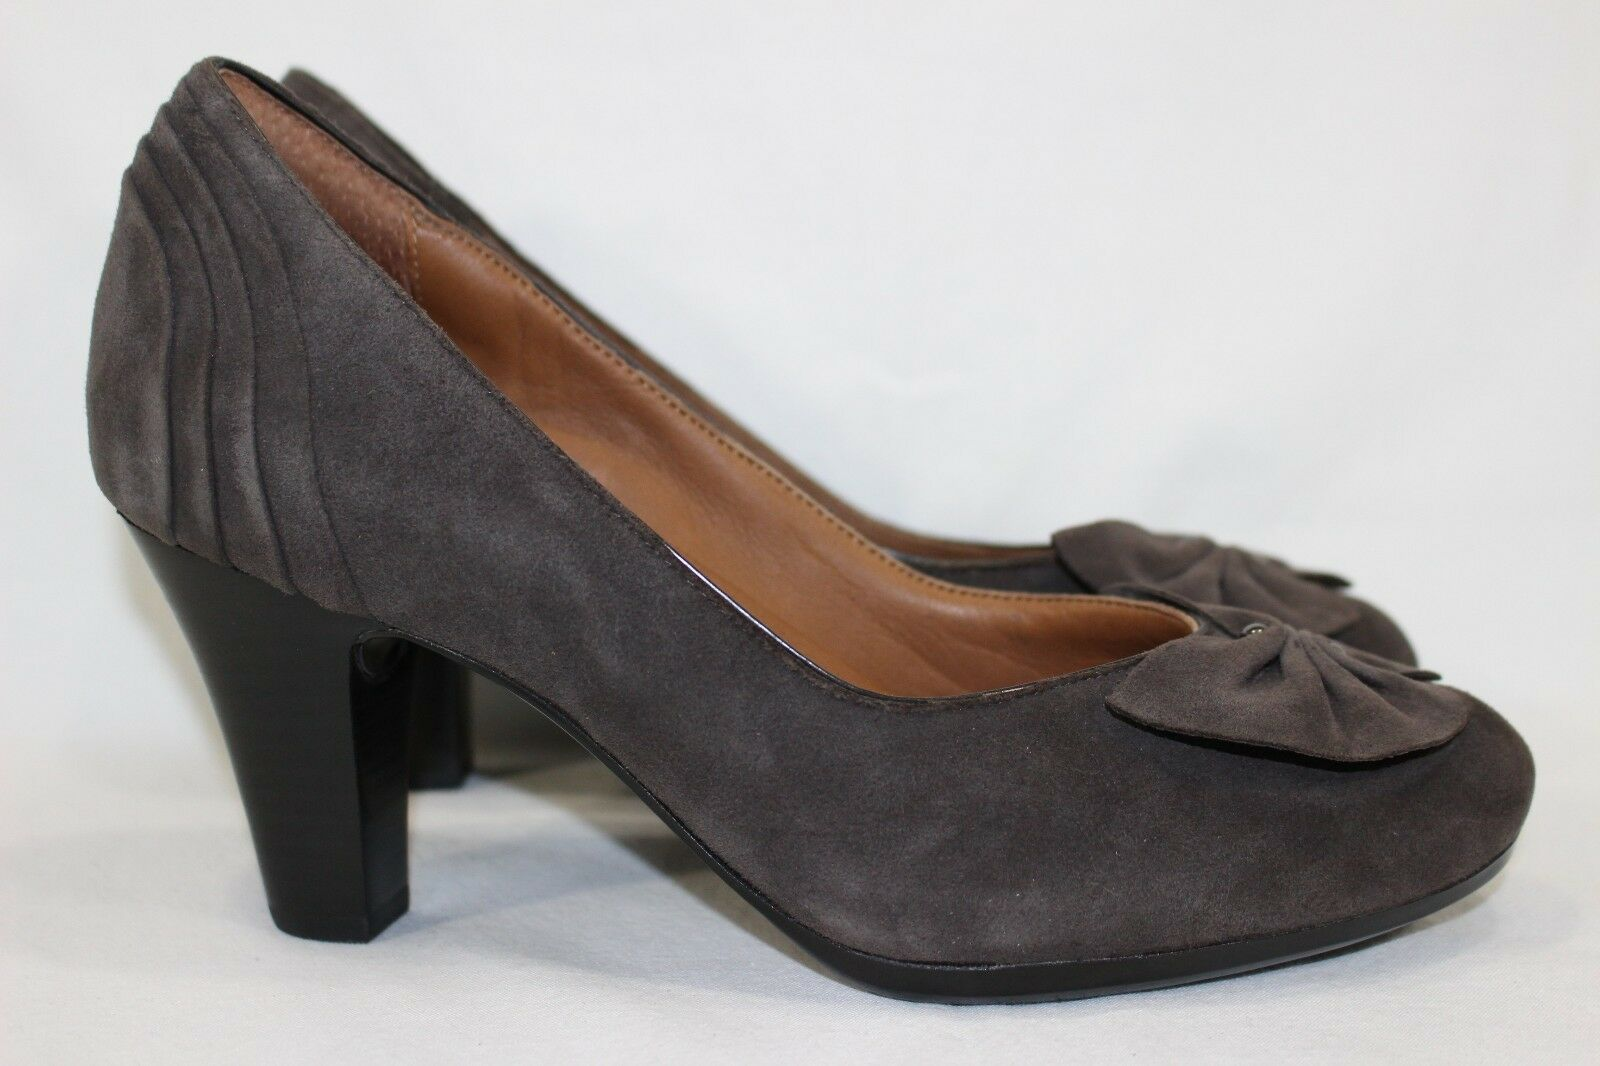 """CLARKS ARTISAN """"SOCIETY BALL"""" BOW PUMPS WOMEN'S 8N BROWN LEATHER # 62316"""